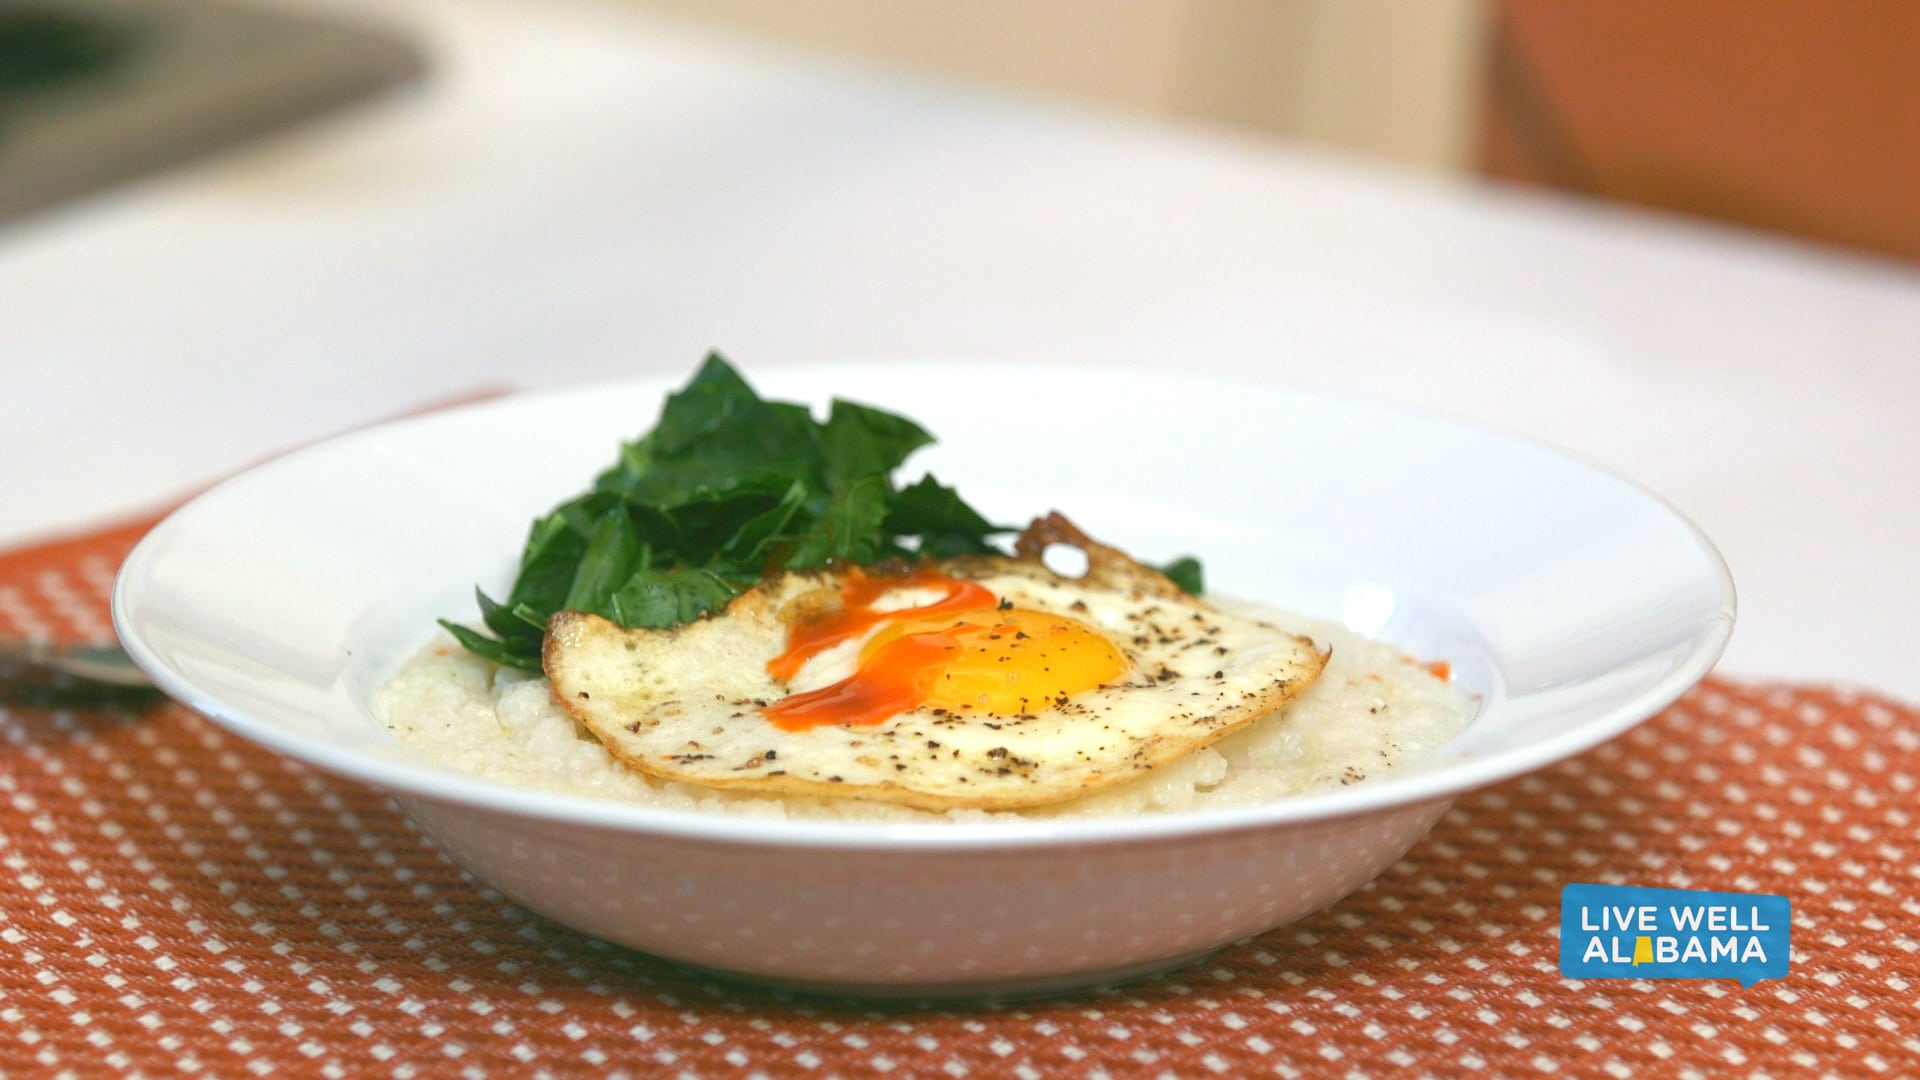 Live Well Alabama Recipe, Grits and Greens